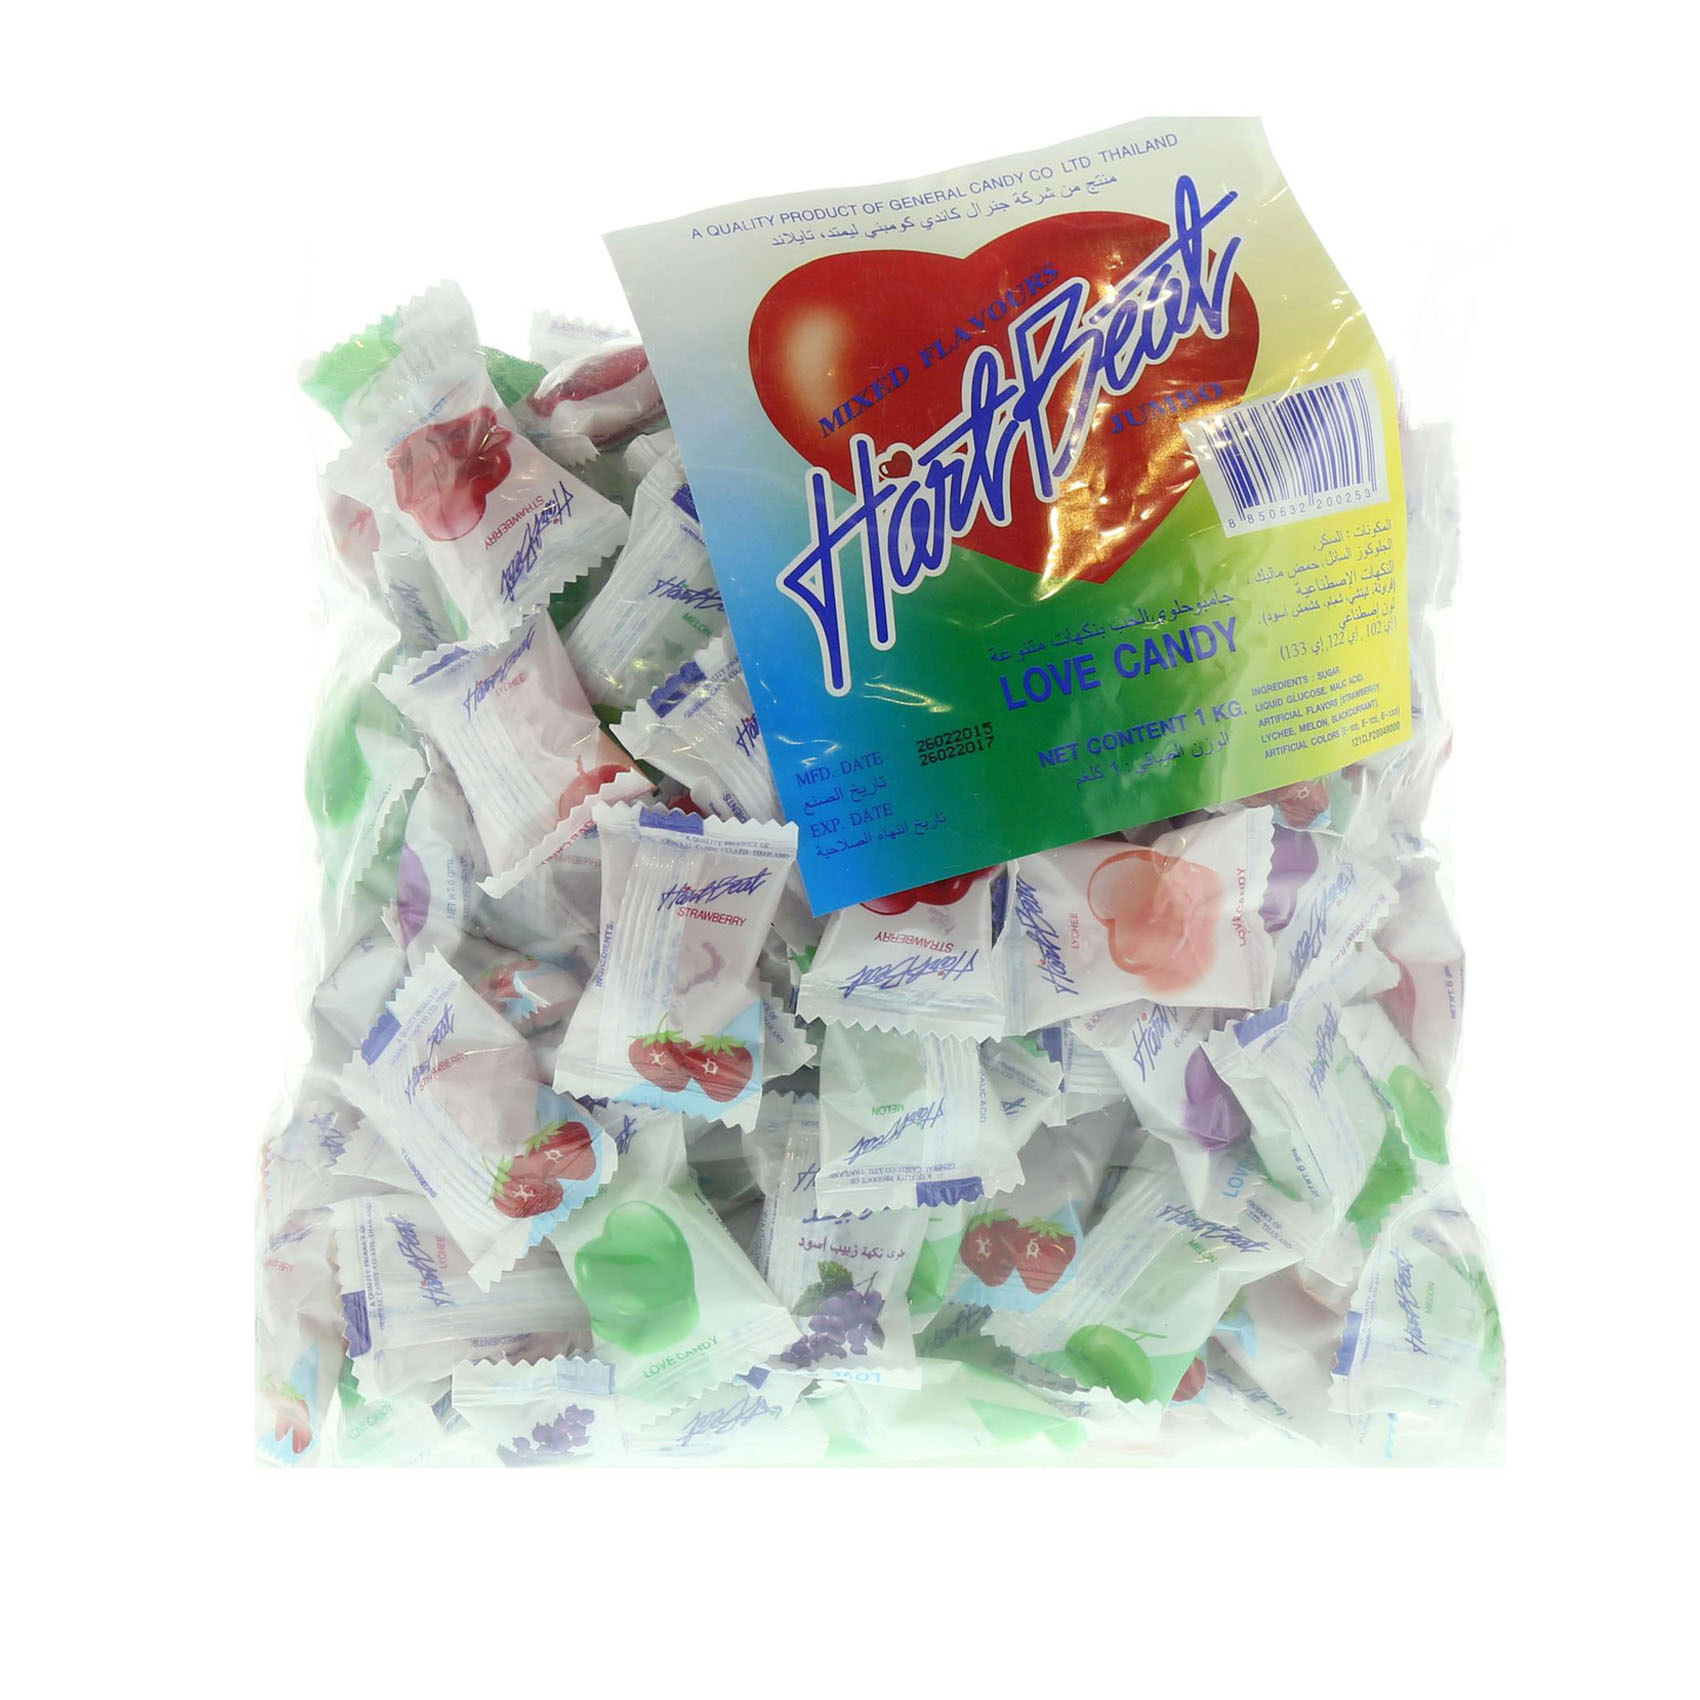 HARTBEAT CANDY MIX FLVR 1KG